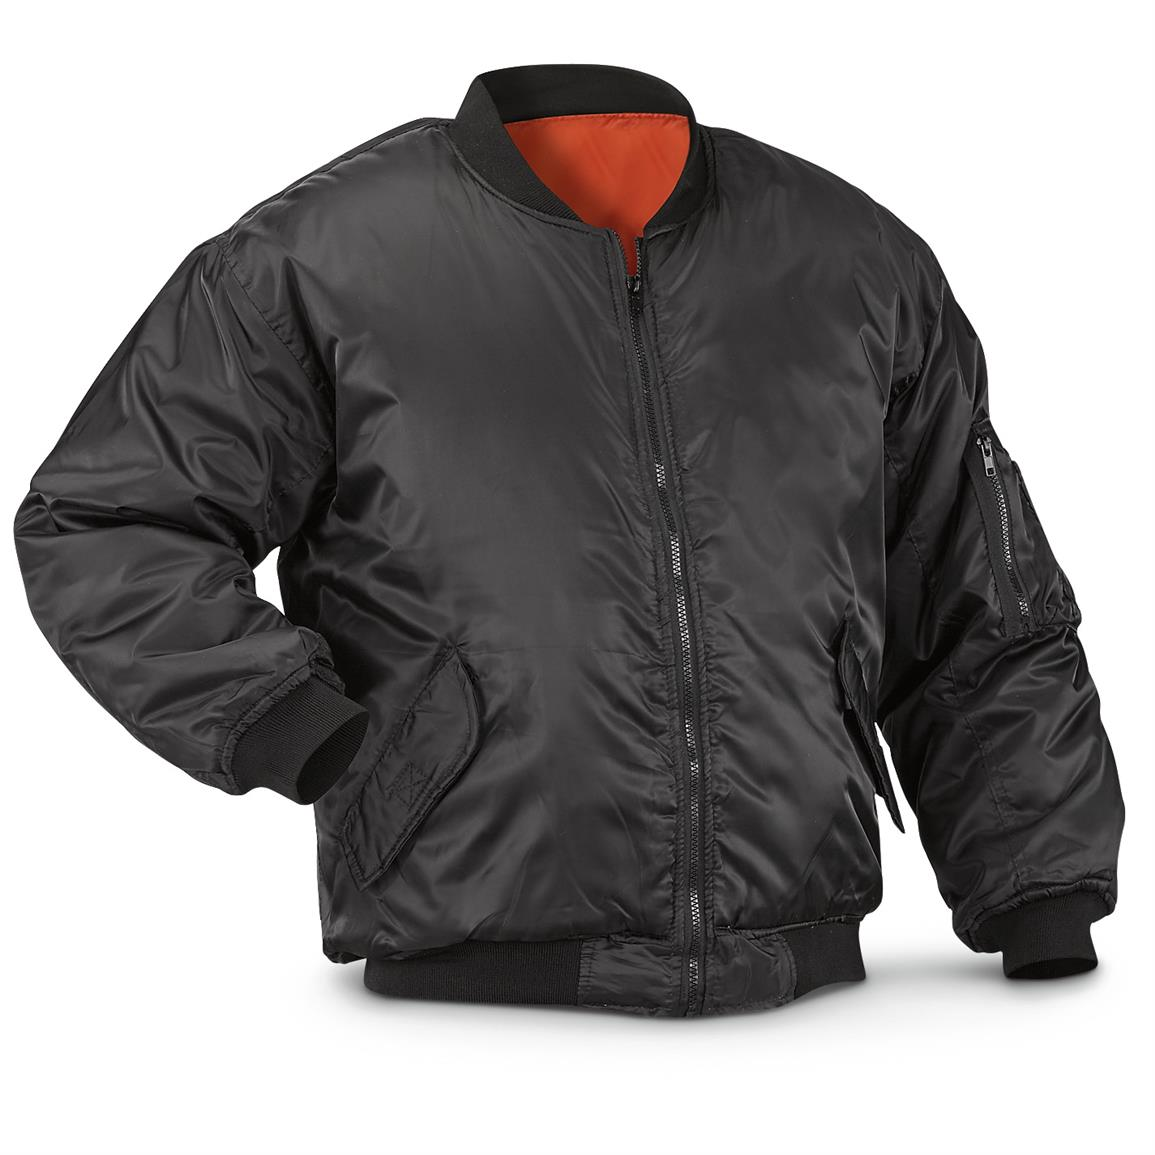 MA-1 Men's Bomber Jacket